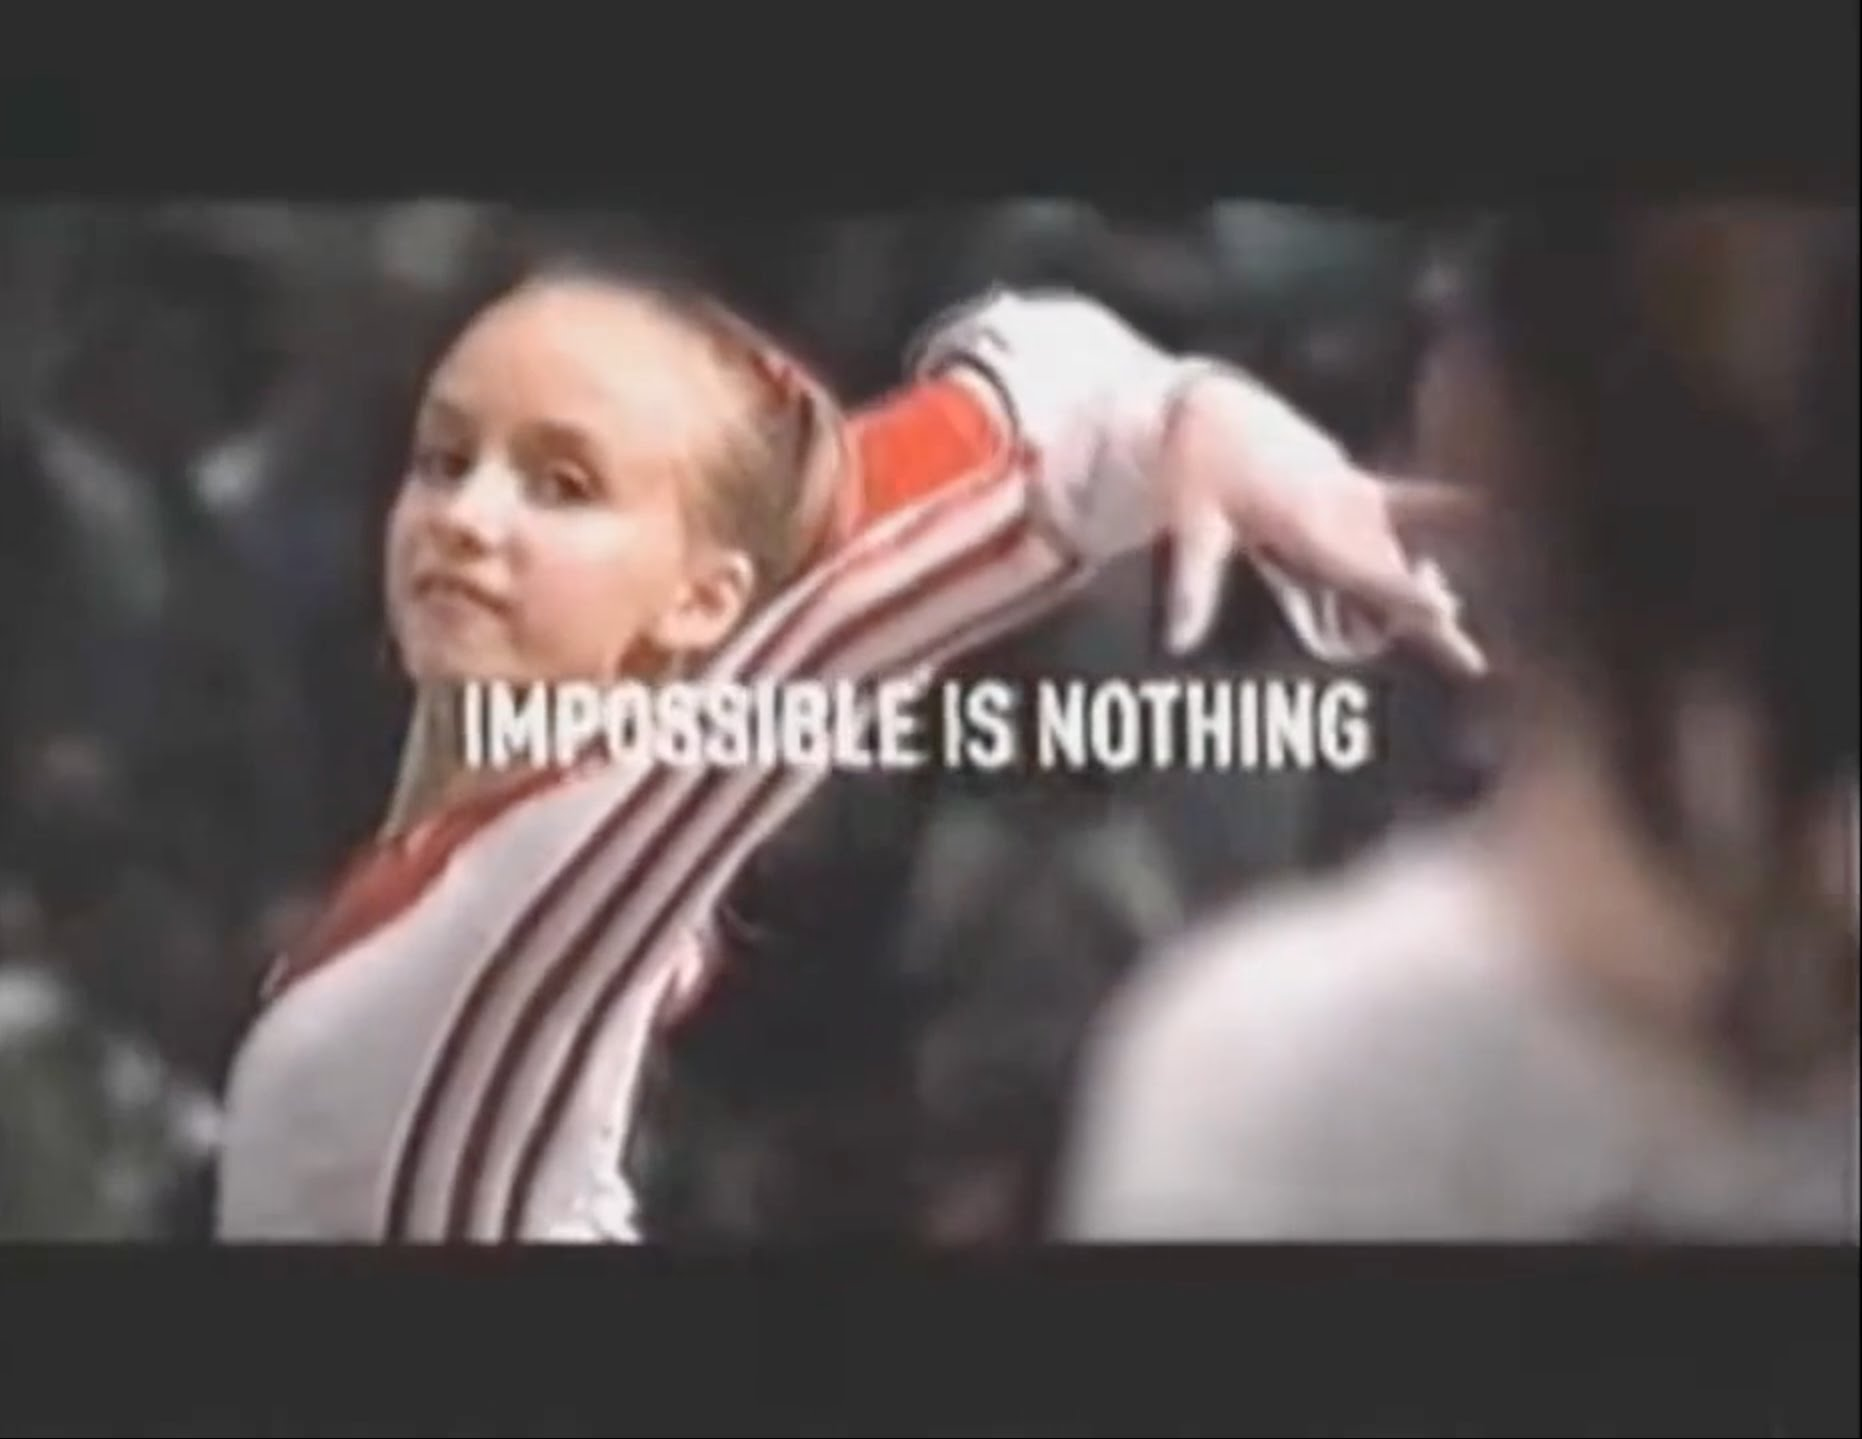 Adidas Campaign - Impossible is nothing